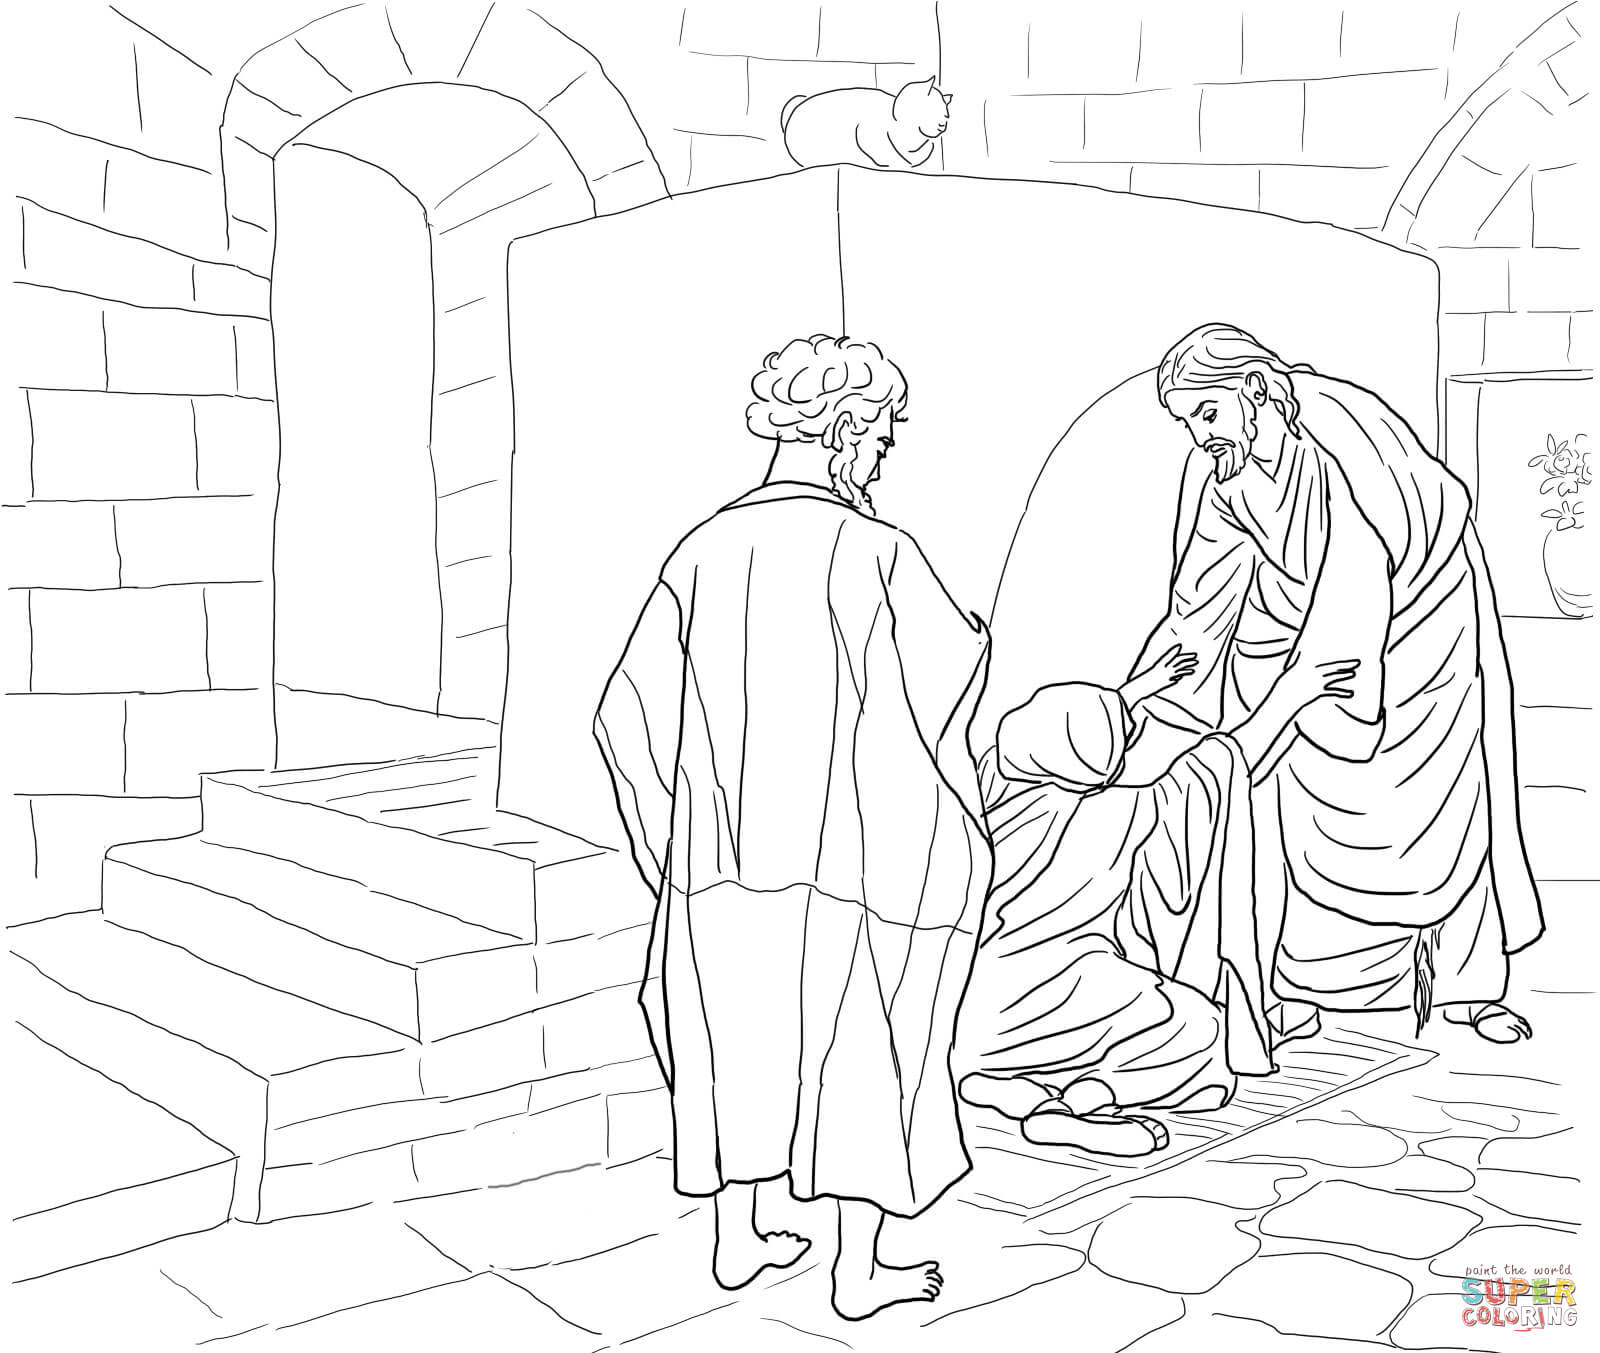 Peter In Prison Coloring Page - Coloring Home